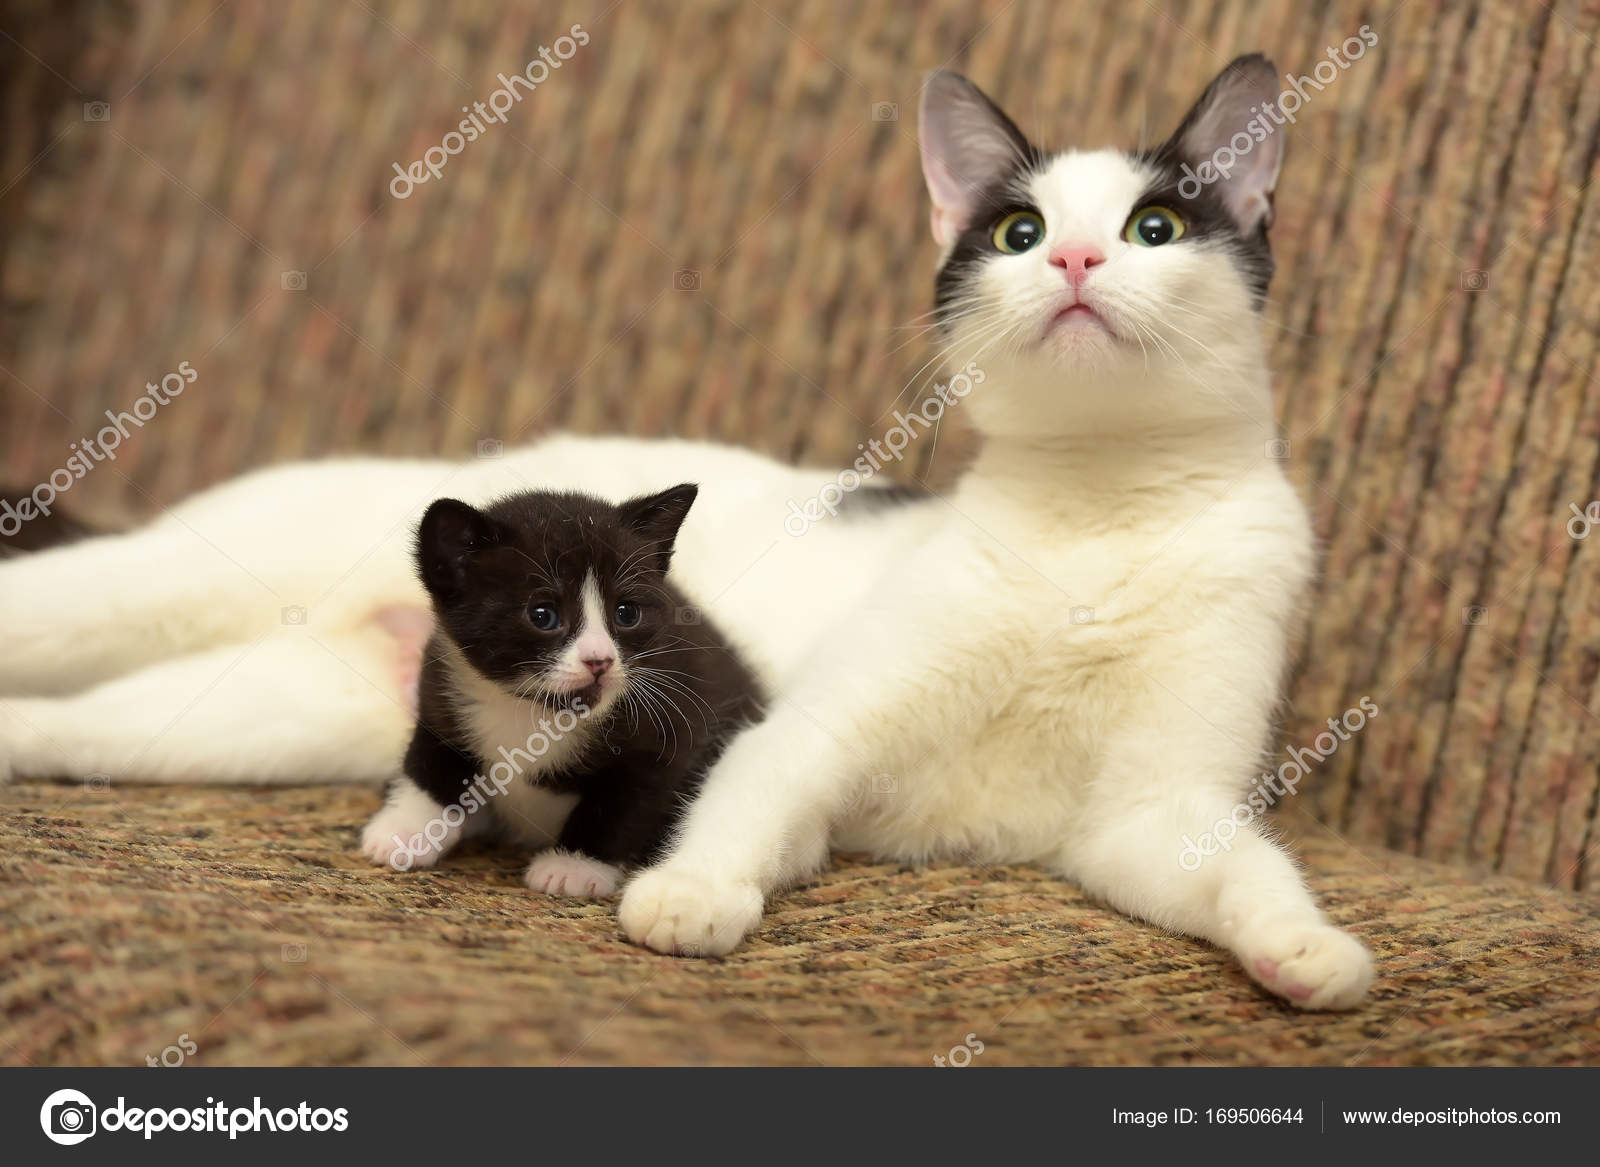 Beautiful White With A Black Cat Lying With Her Kitten Stock Photo C Evdoha 169506644